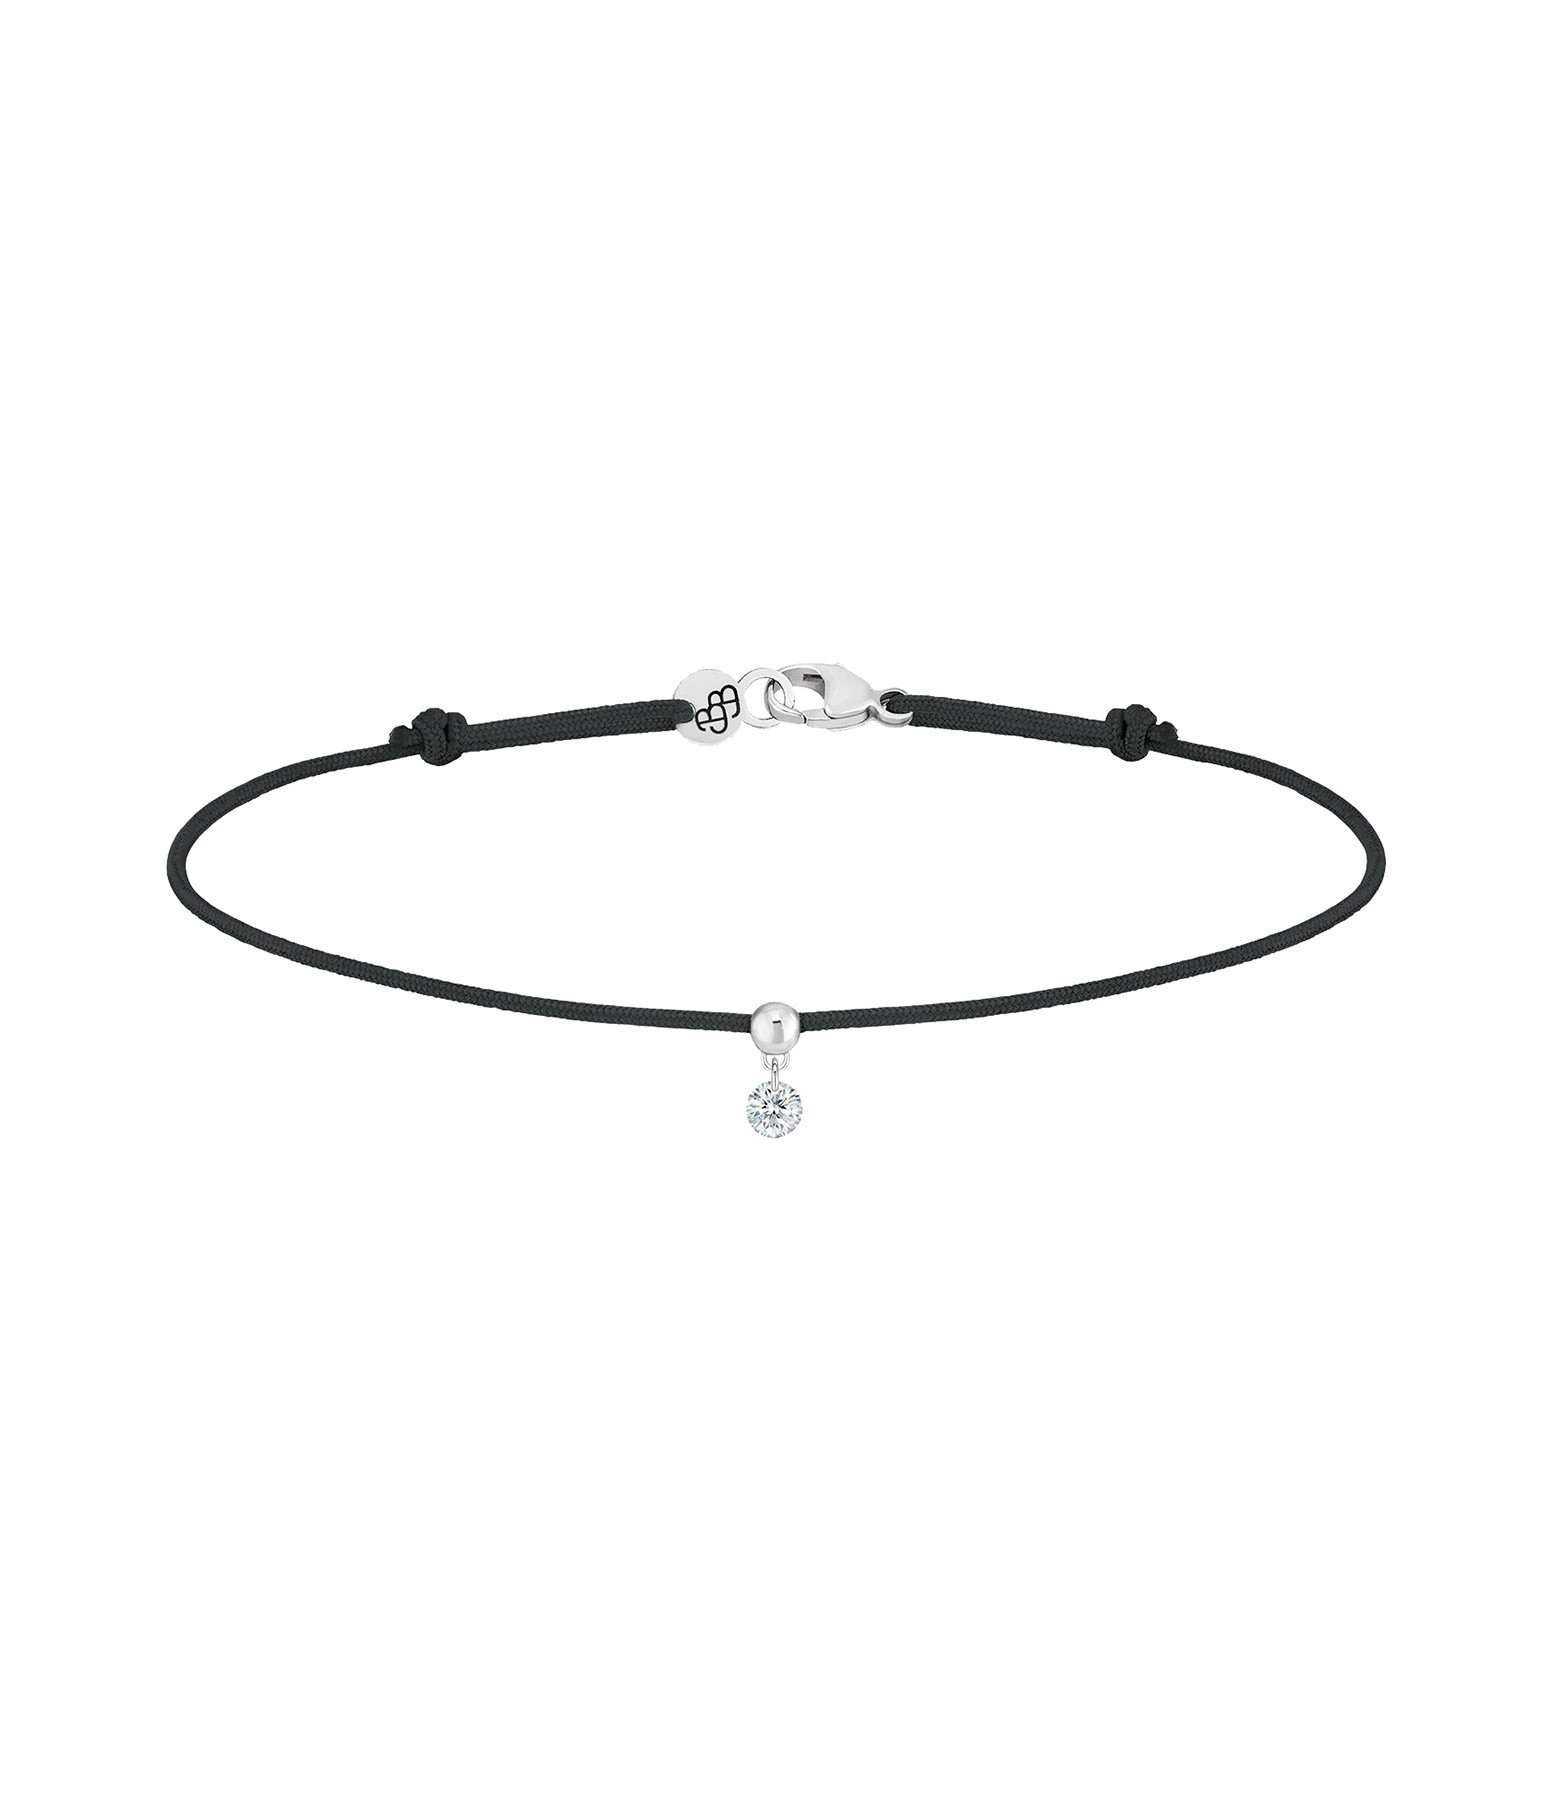 LA BRUNE & LA BLONDE - Bracelet BB Diamant Brillant Cordon Noir Or Blanc